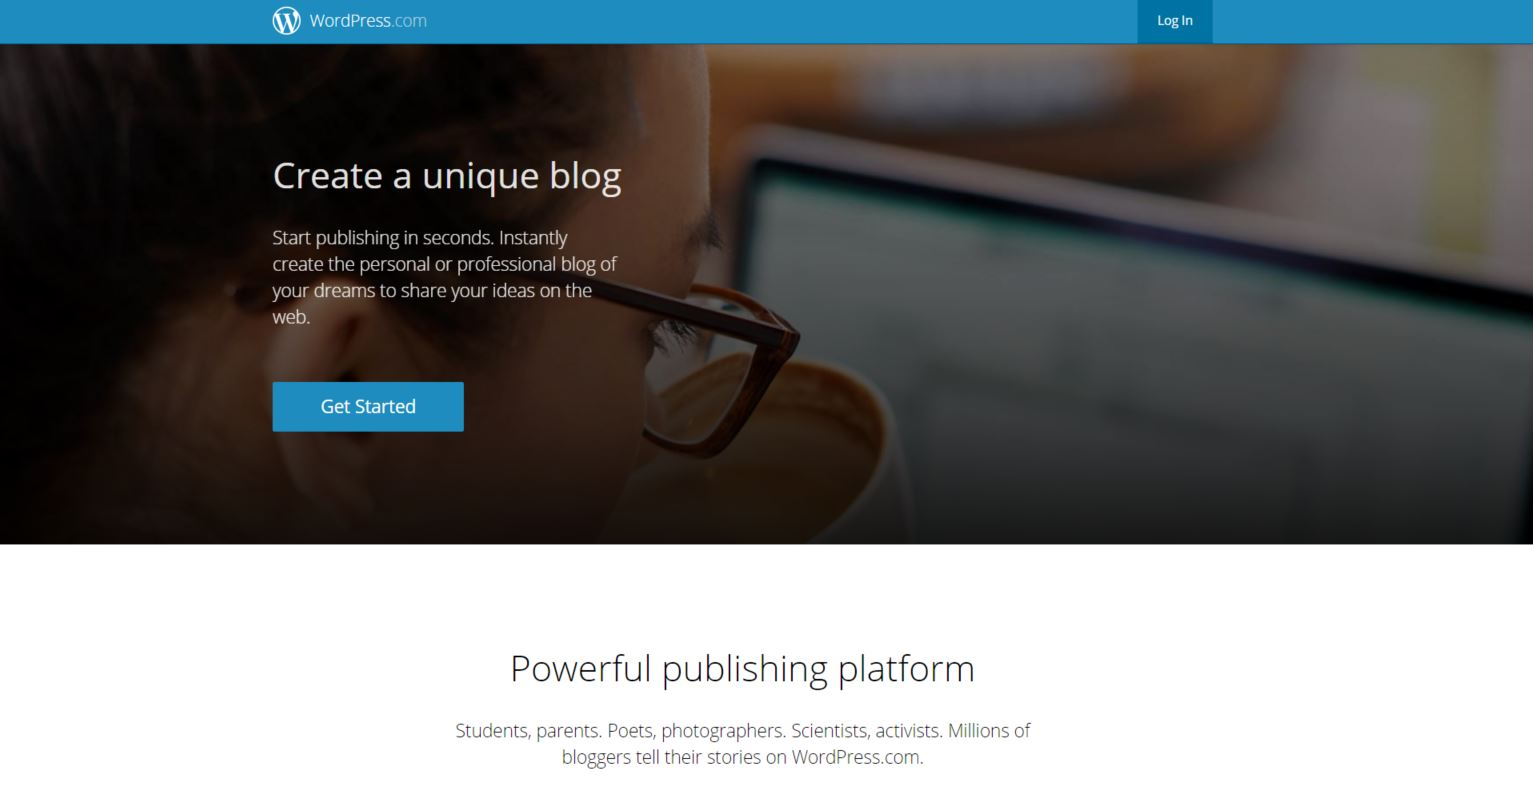 wordpress about page